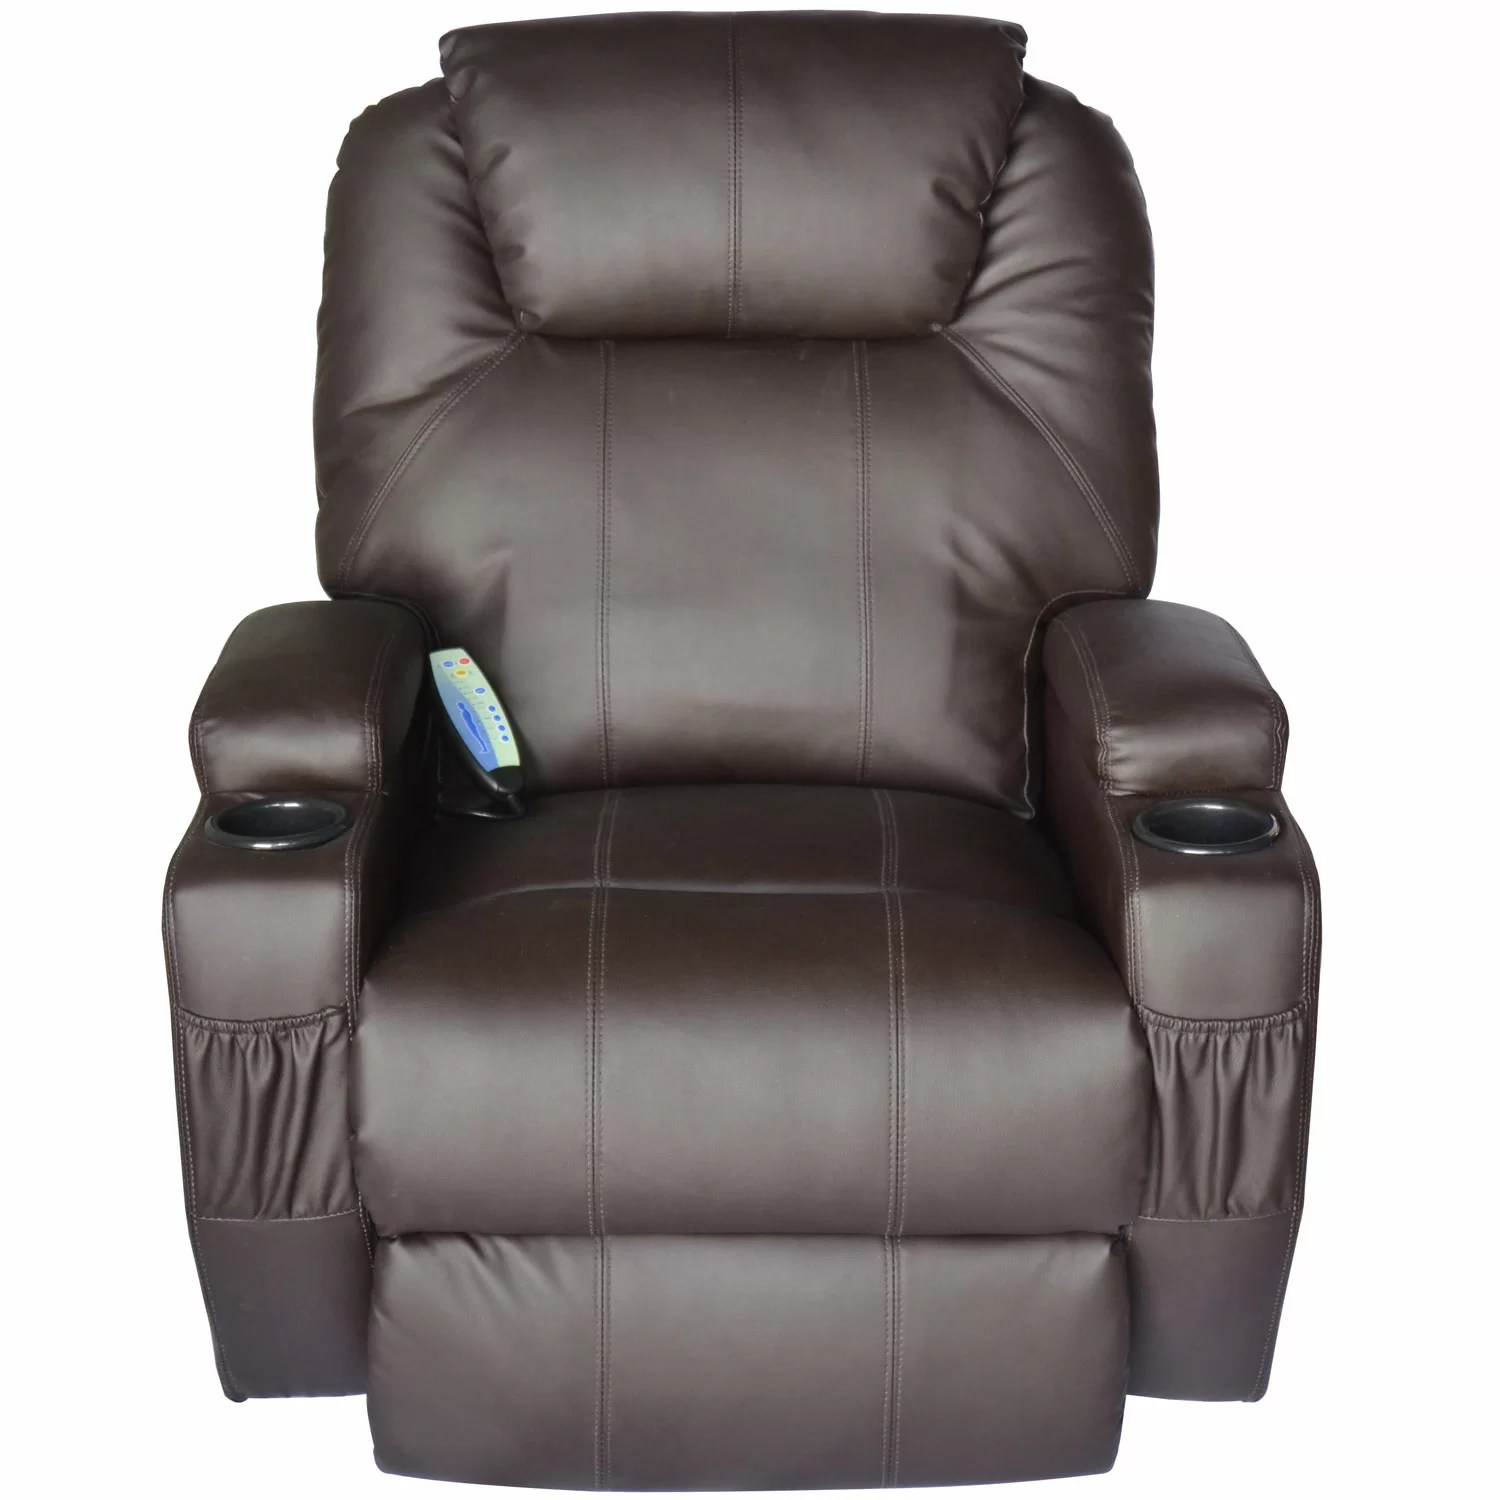 vibrating gaming chair eams lounge outsunny homcom deluxe heated vinyl leather